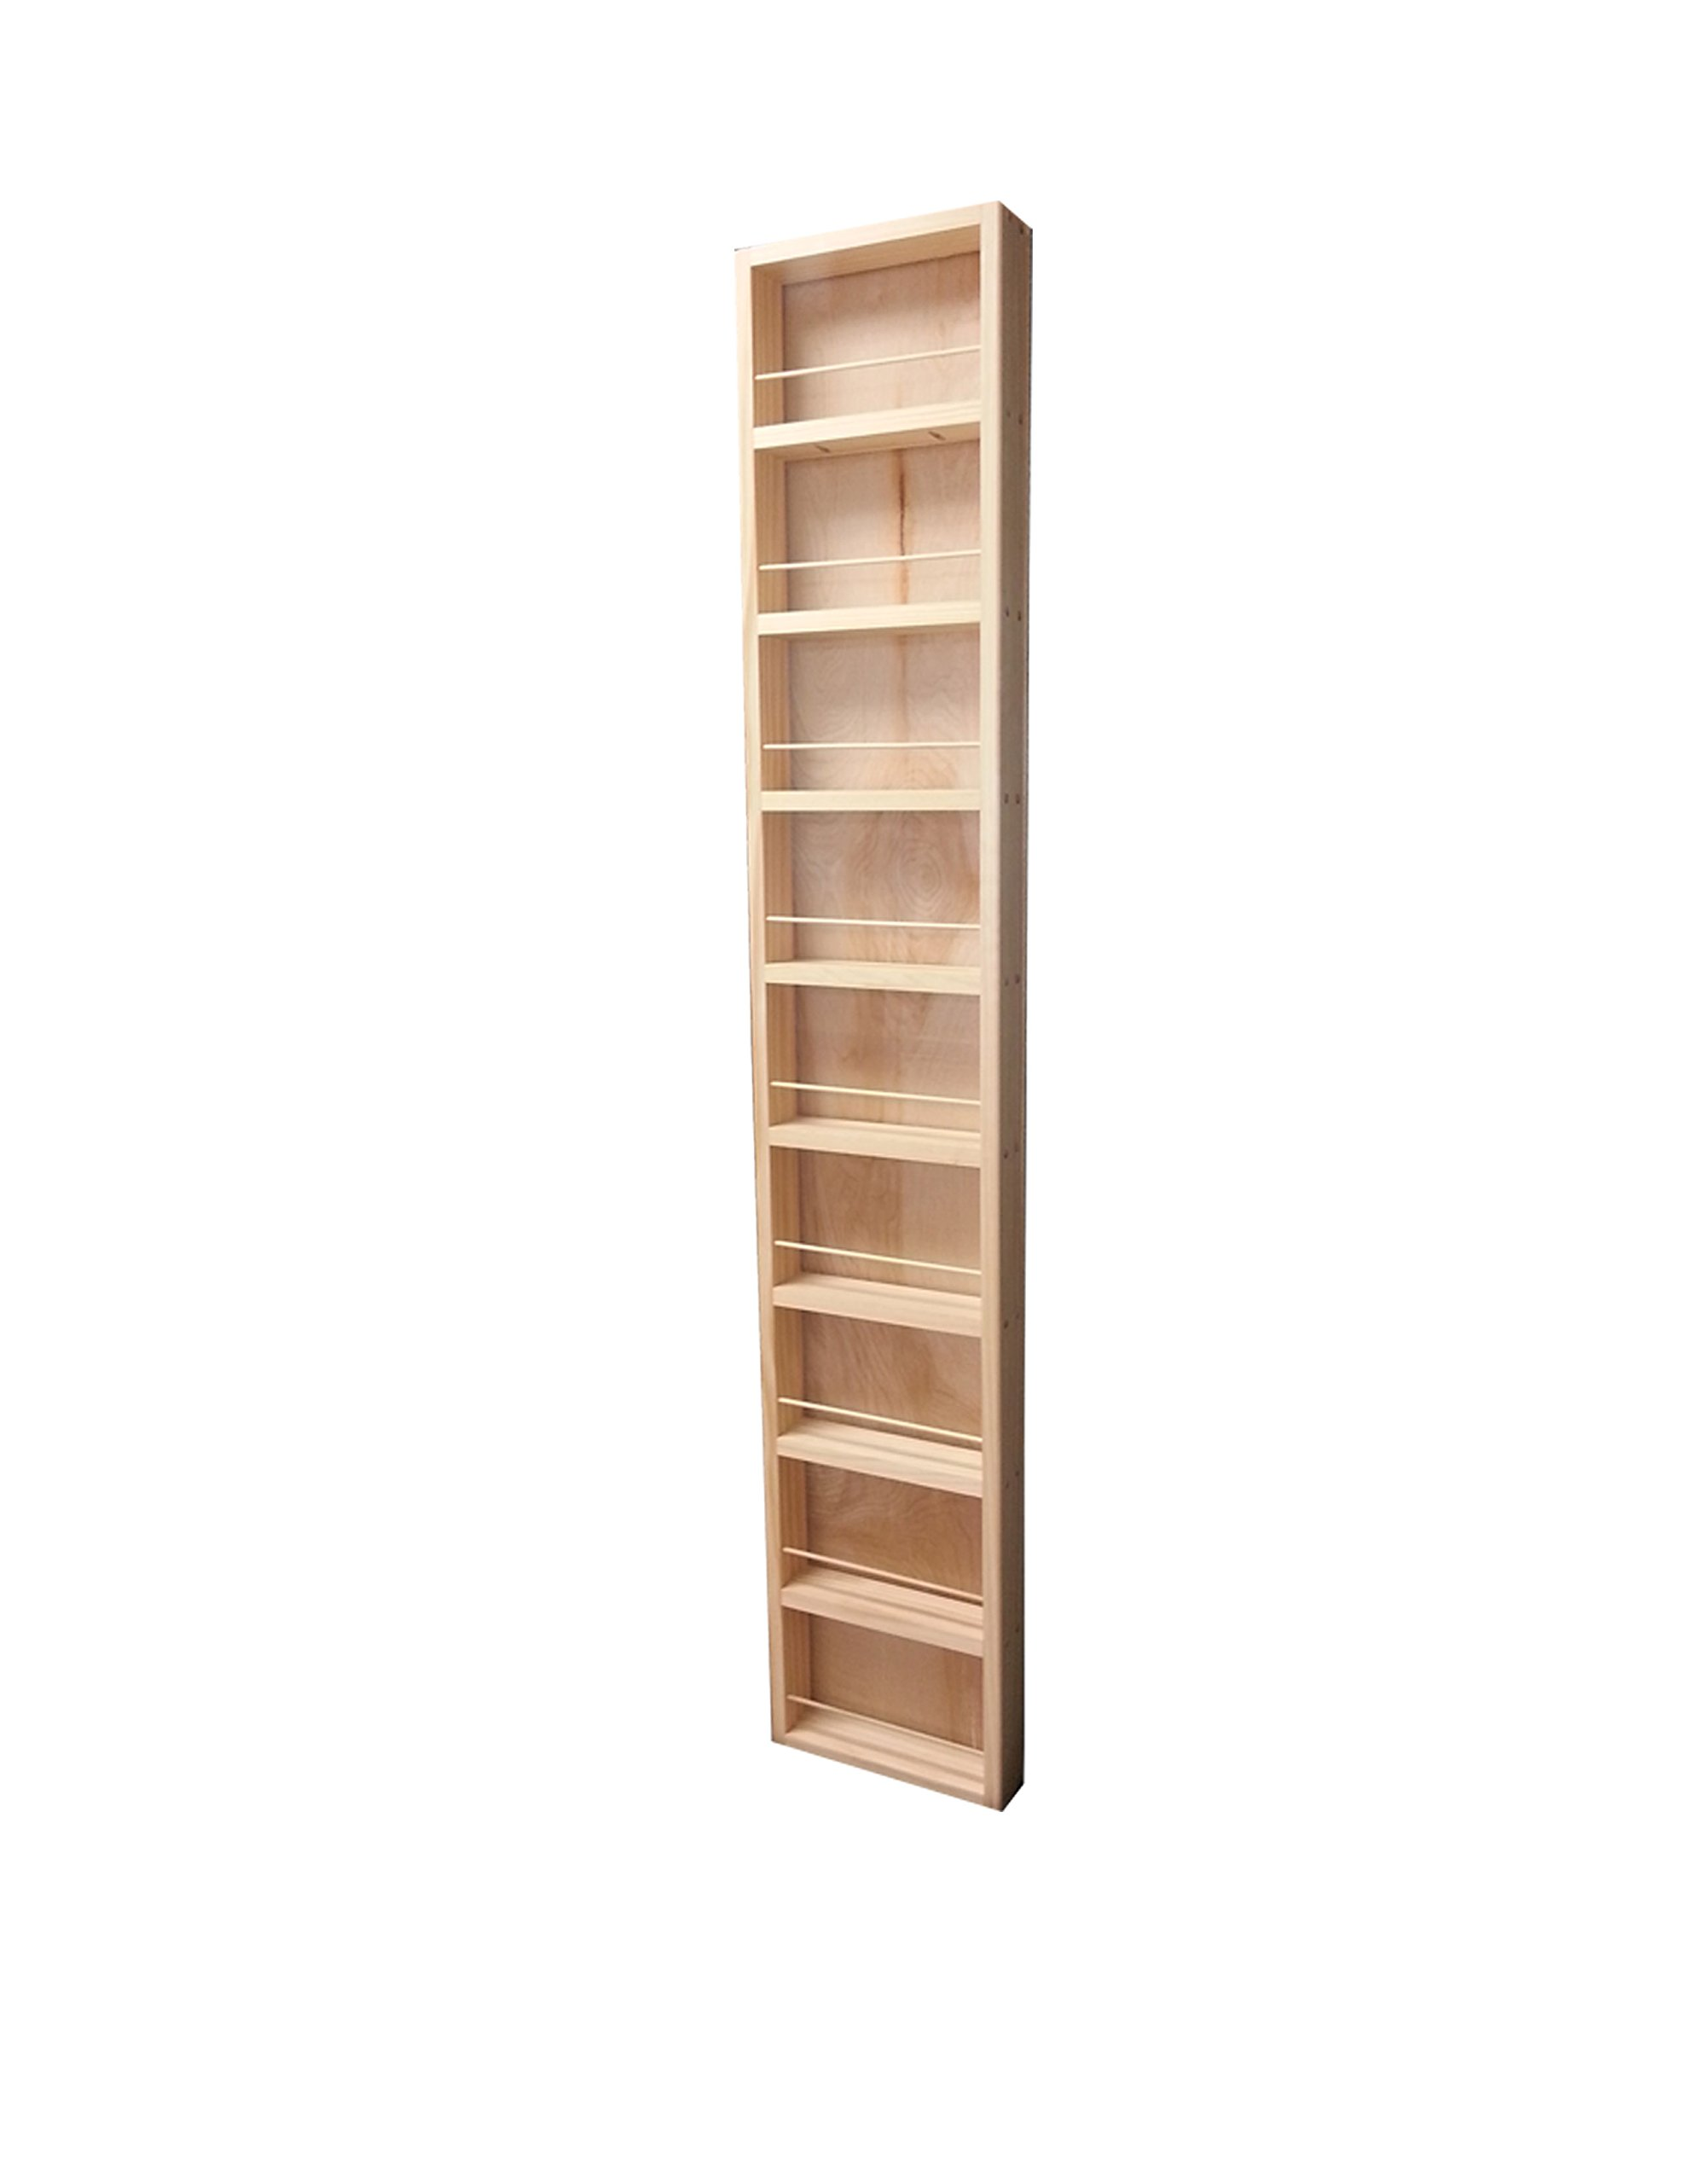 Wood Cabinets Direct Fulton Premium on The Wall Spice Rack, 62'' Height x 14'' Width x 2.5'' Deep